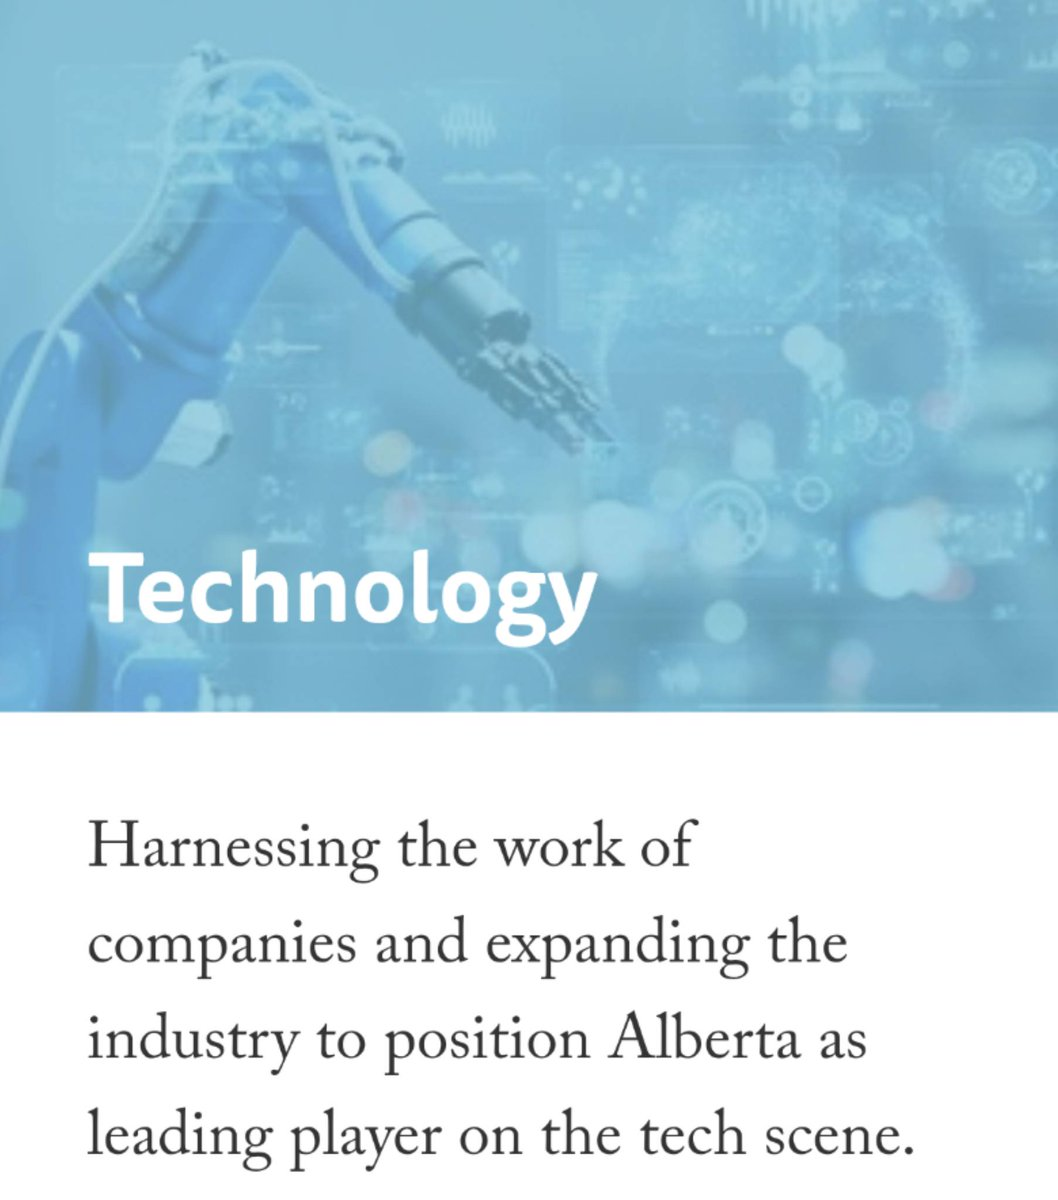 We are inviting you to participate  in our consultation on Tech Innovation with Deron Bilous, Critic for Economic Development & Innovation.  Join us Jan 27 from 6-730pm.   Register here⤵️ https://t.co/XDXNz1c6aM  #abfuture #abpoli #ableg #abtechnoloy #technology #TechInnovation https://t.co/43RzHoRKKP